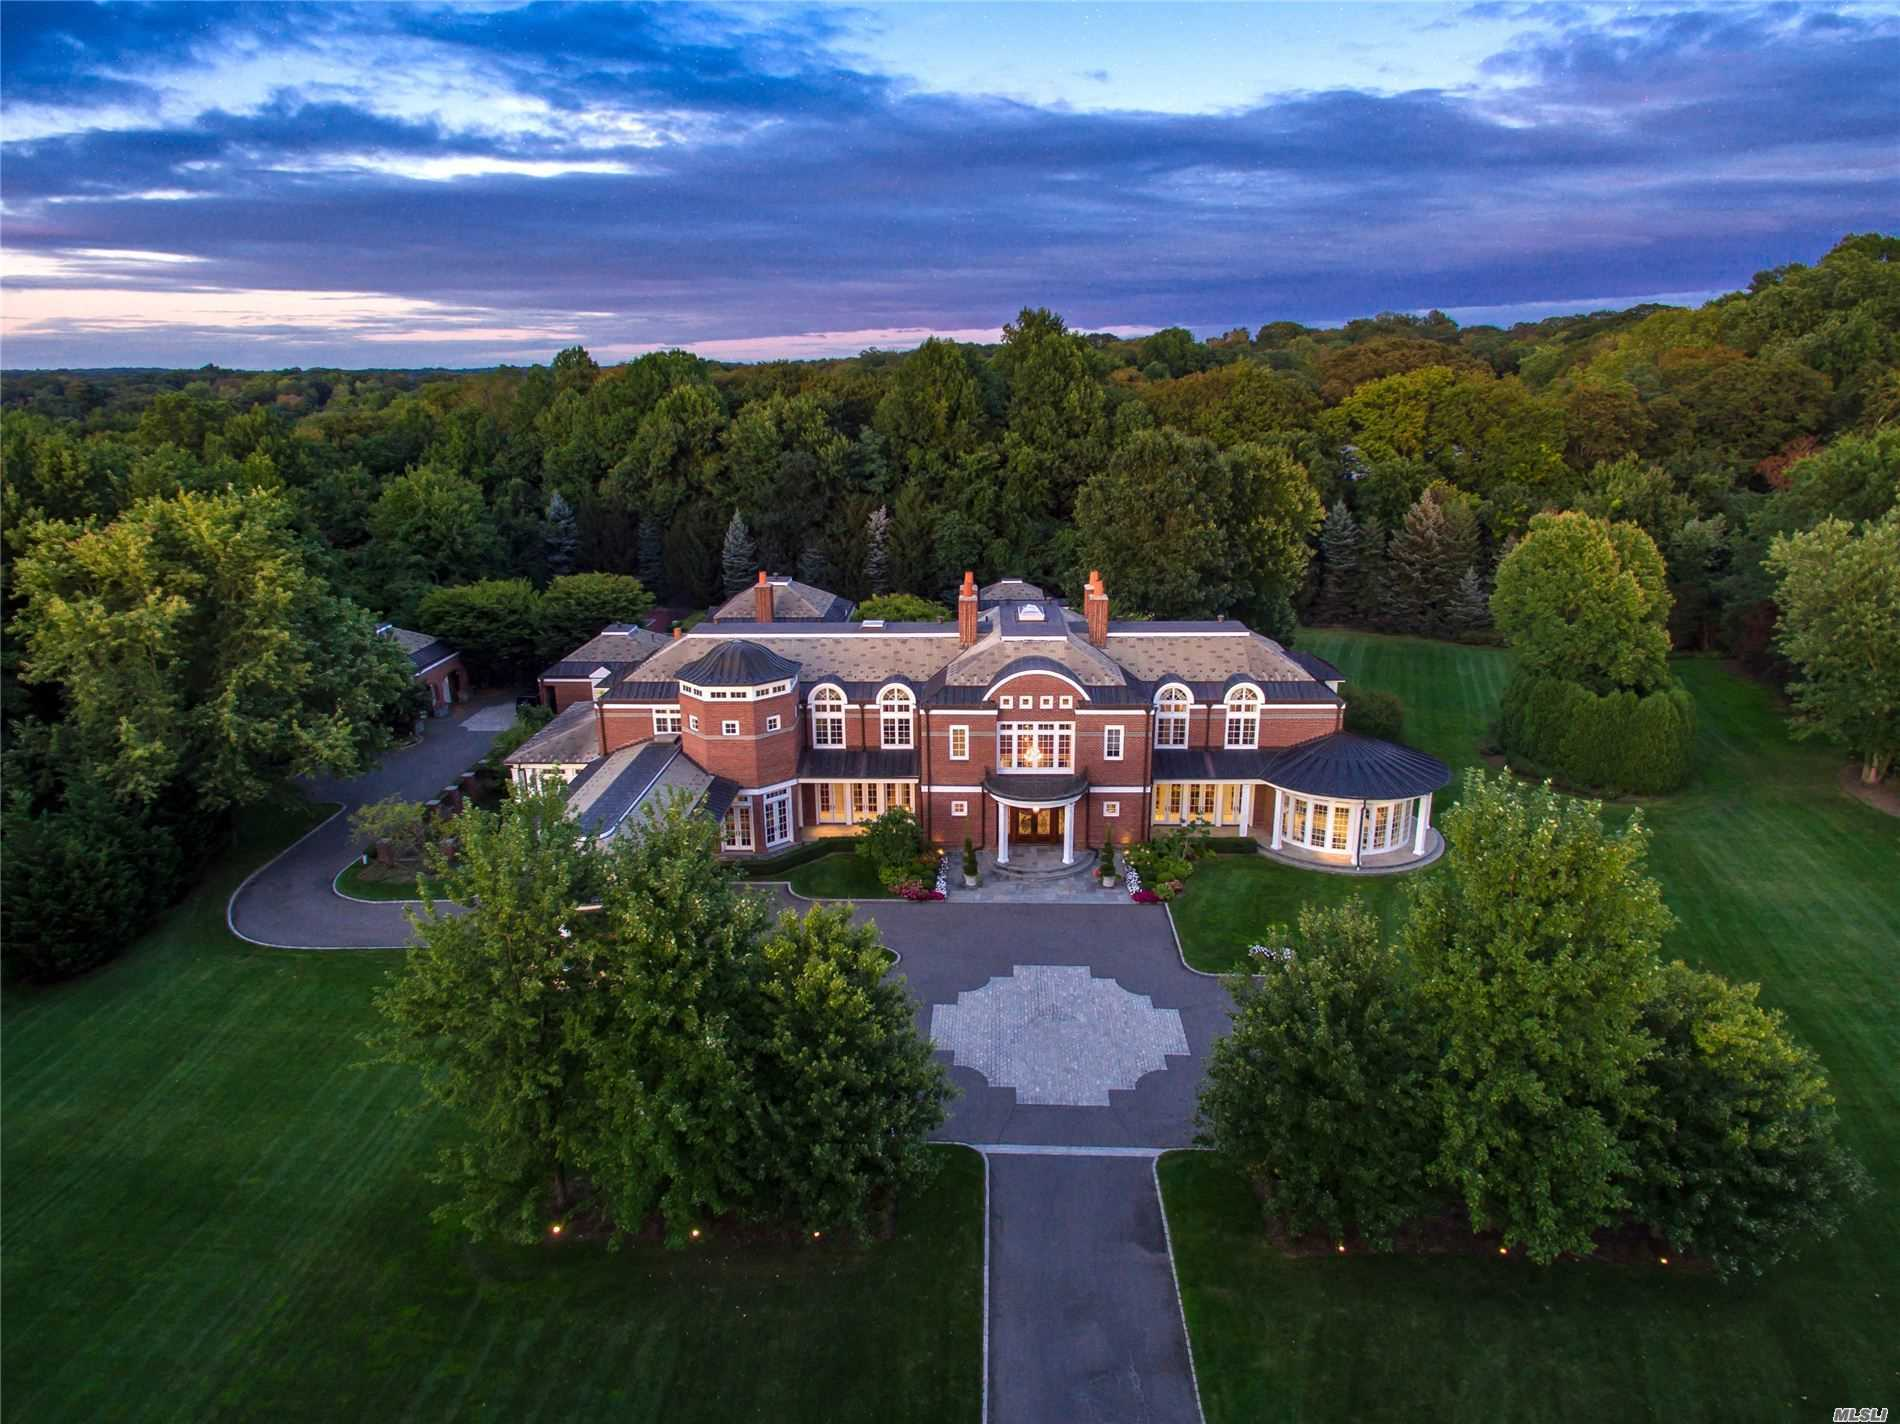 Situated on over 6 acres of perfectly manicured property and located on one of the most prestigious streets on the Gold Coast of Long Island, this custom-built estate simply embodies perfection. Past the automatic gates, a quarter-mile long undulating private driveway leads to the all brick residence with amenities including a fully integrated Crestron and Lutron systems, an in-ground pool, cabana with full kitchen, and bathroom, tennis court, hot tub and zoned in the top-ranked Jericho School District.